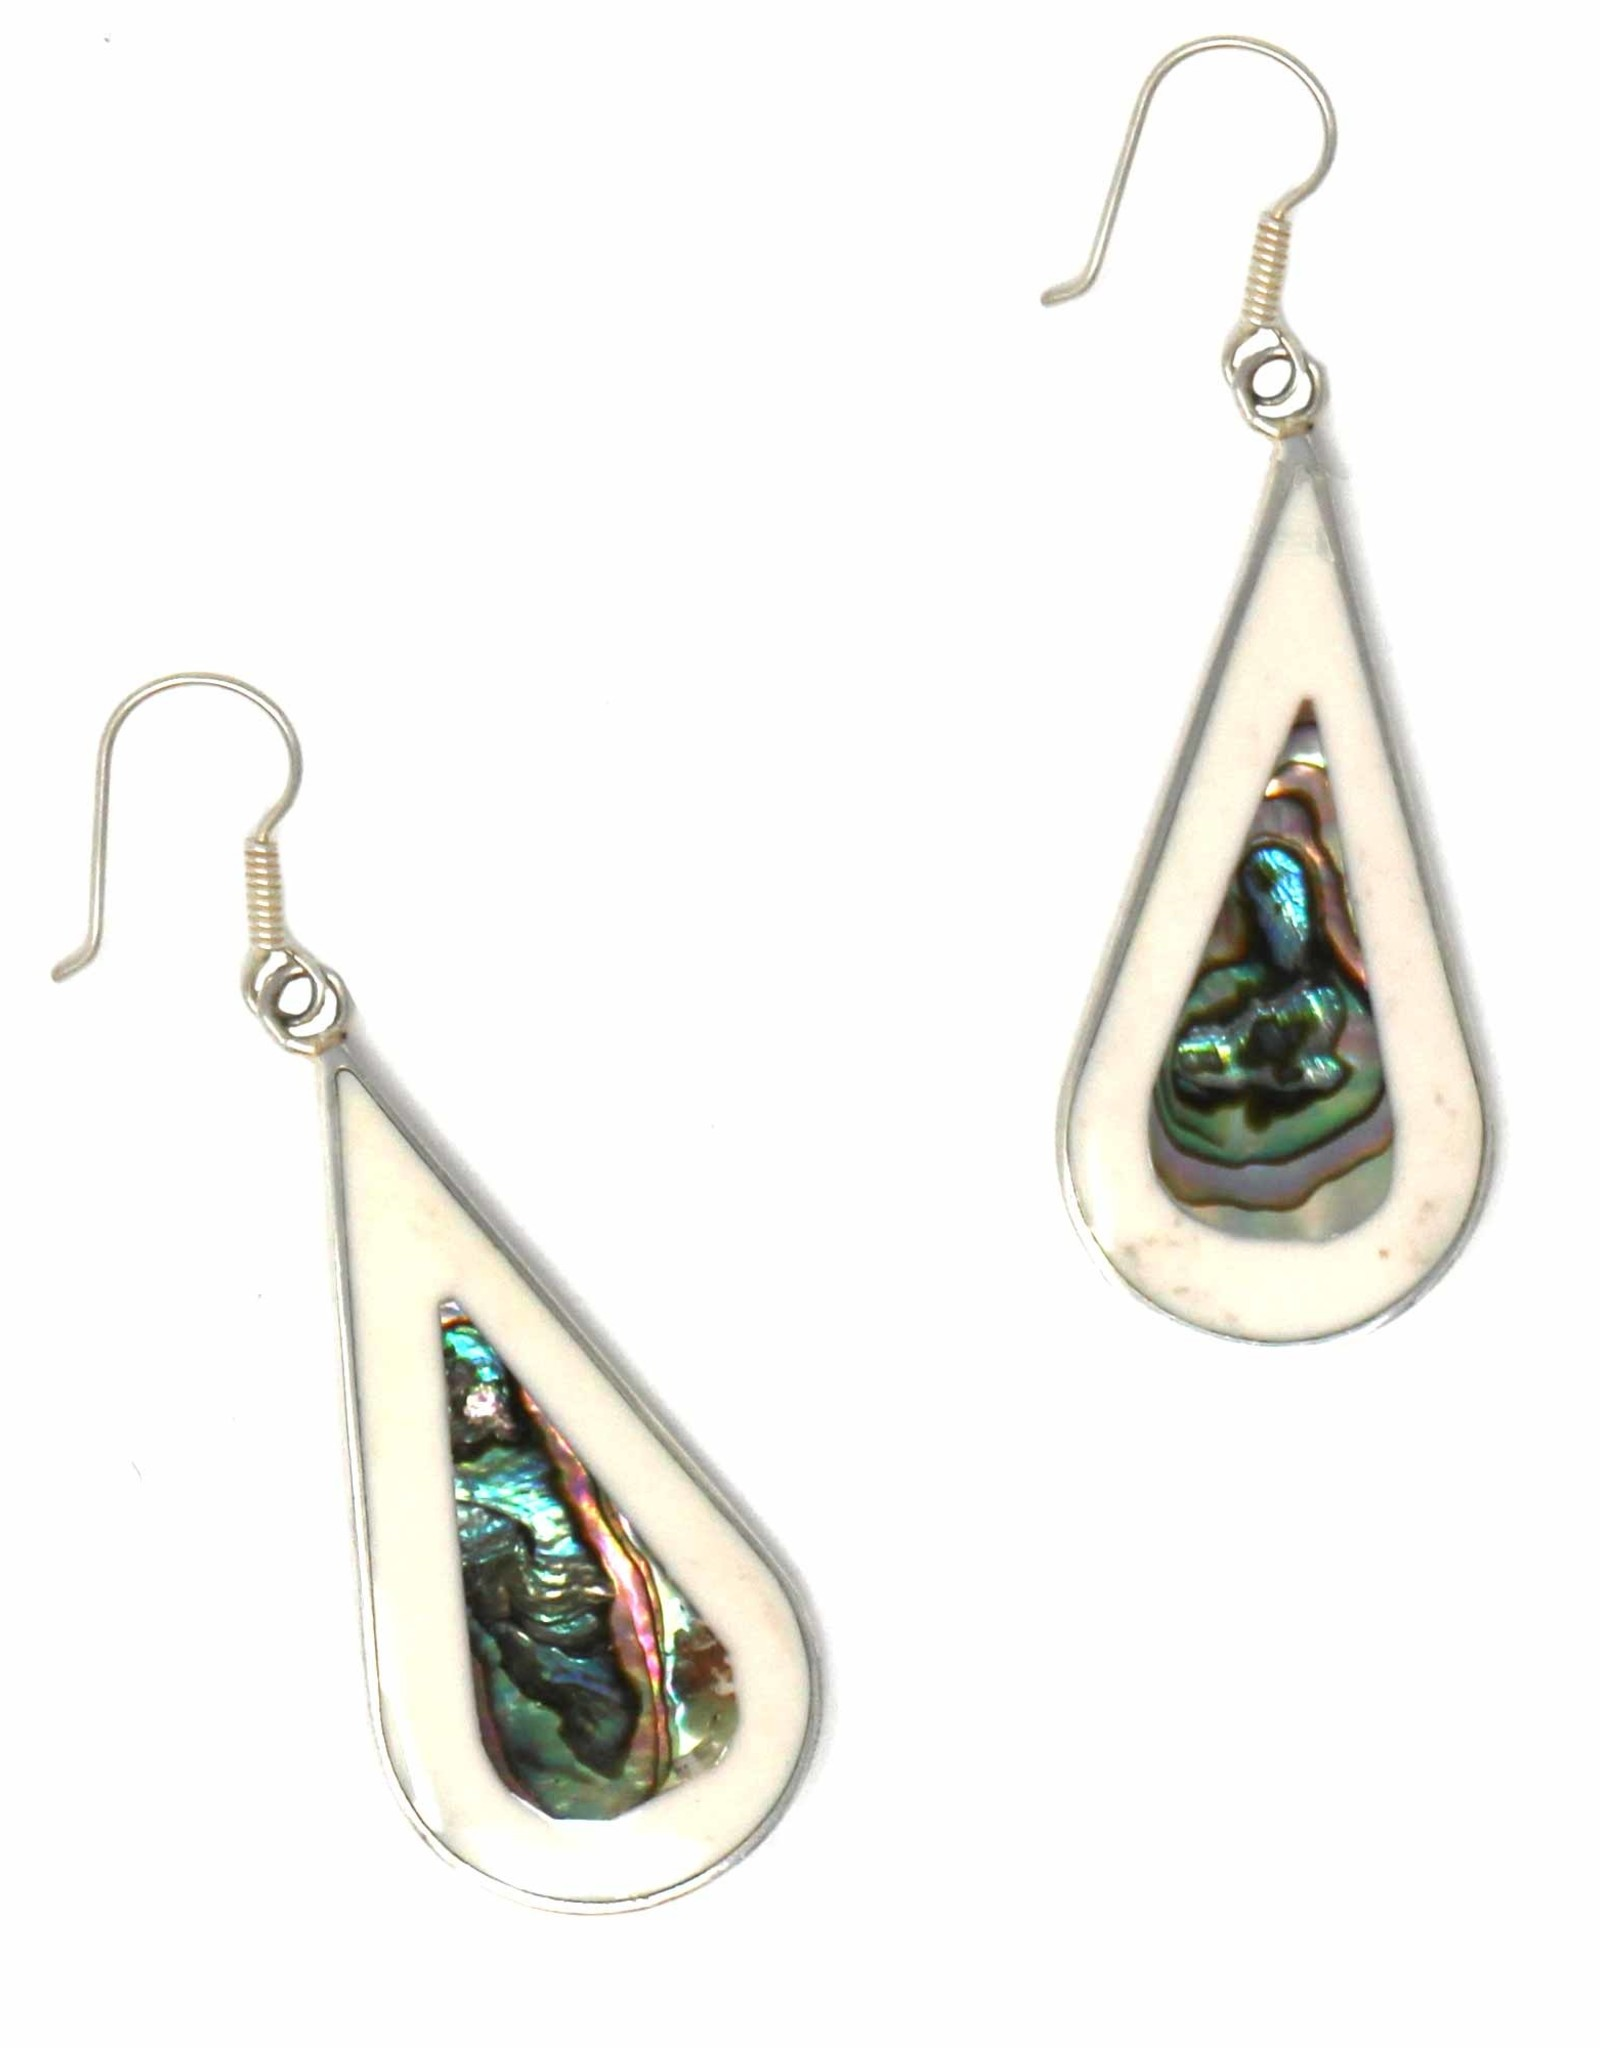 Global Crafts Earrings, Abalone/Mother of Pearl Teardrop